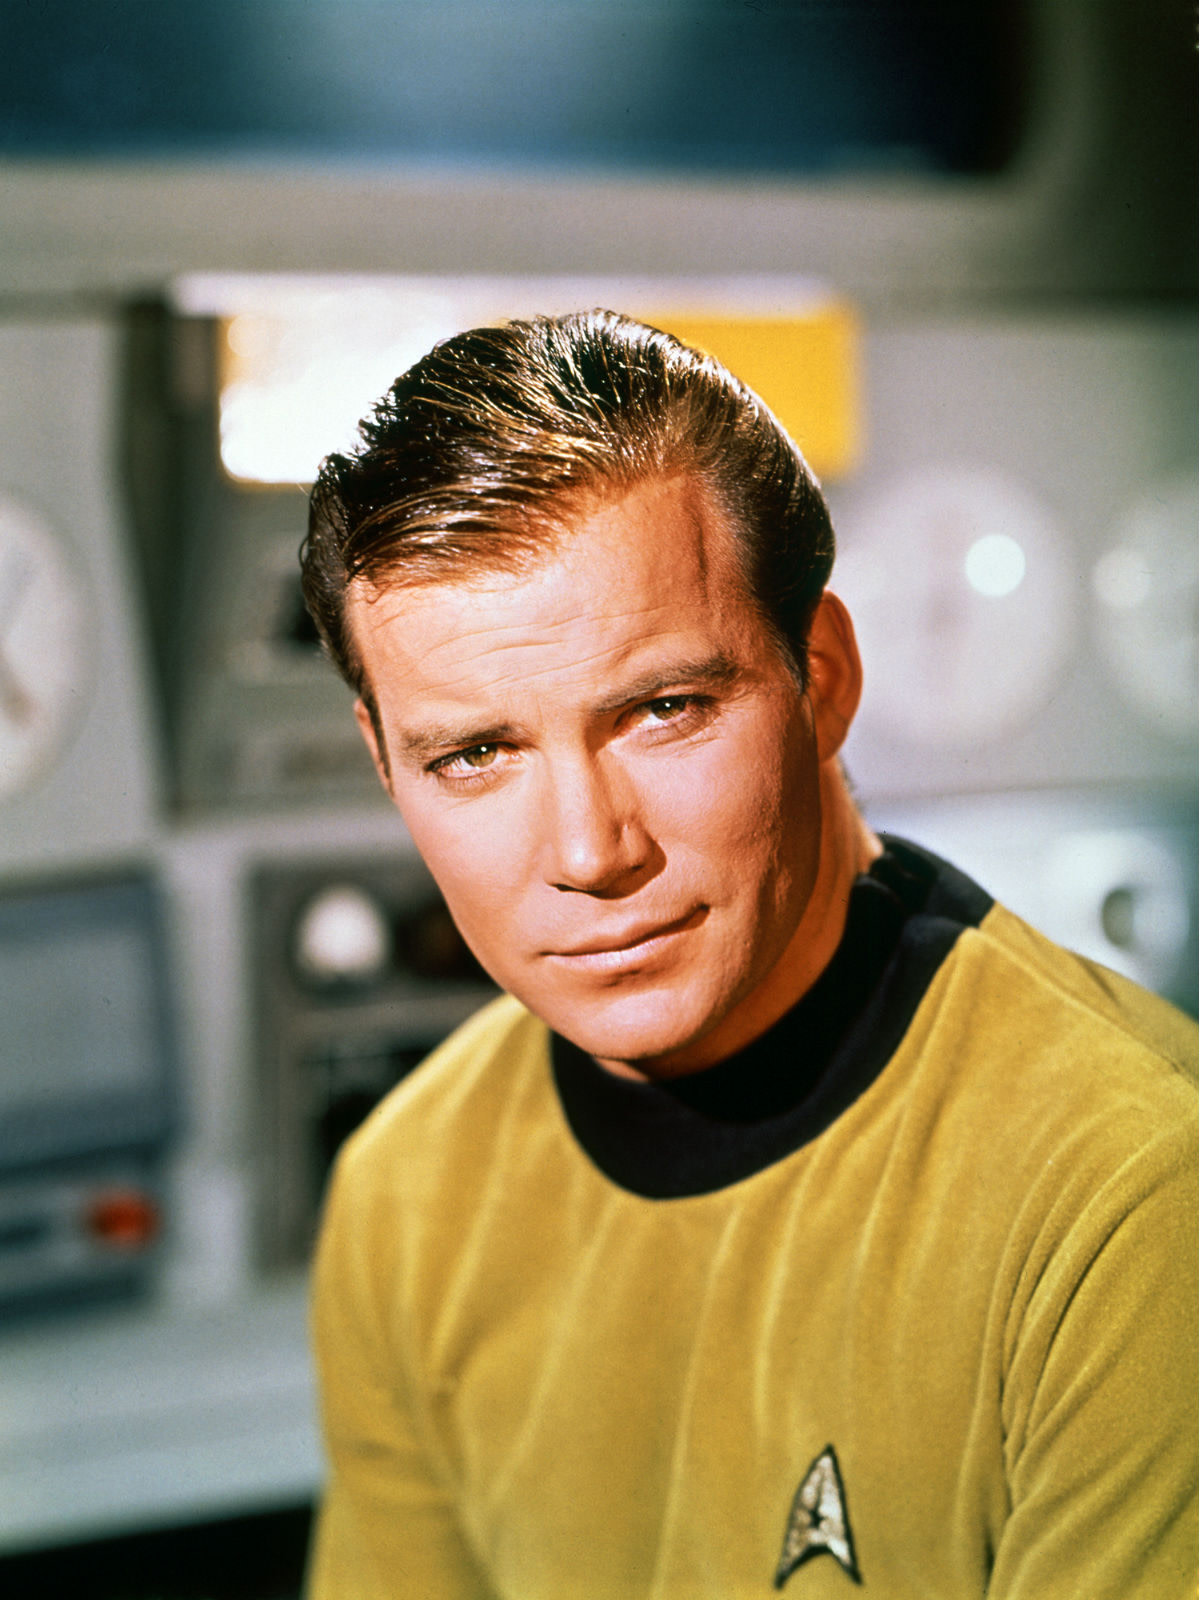 William Shatner as Captain James T. Kirk